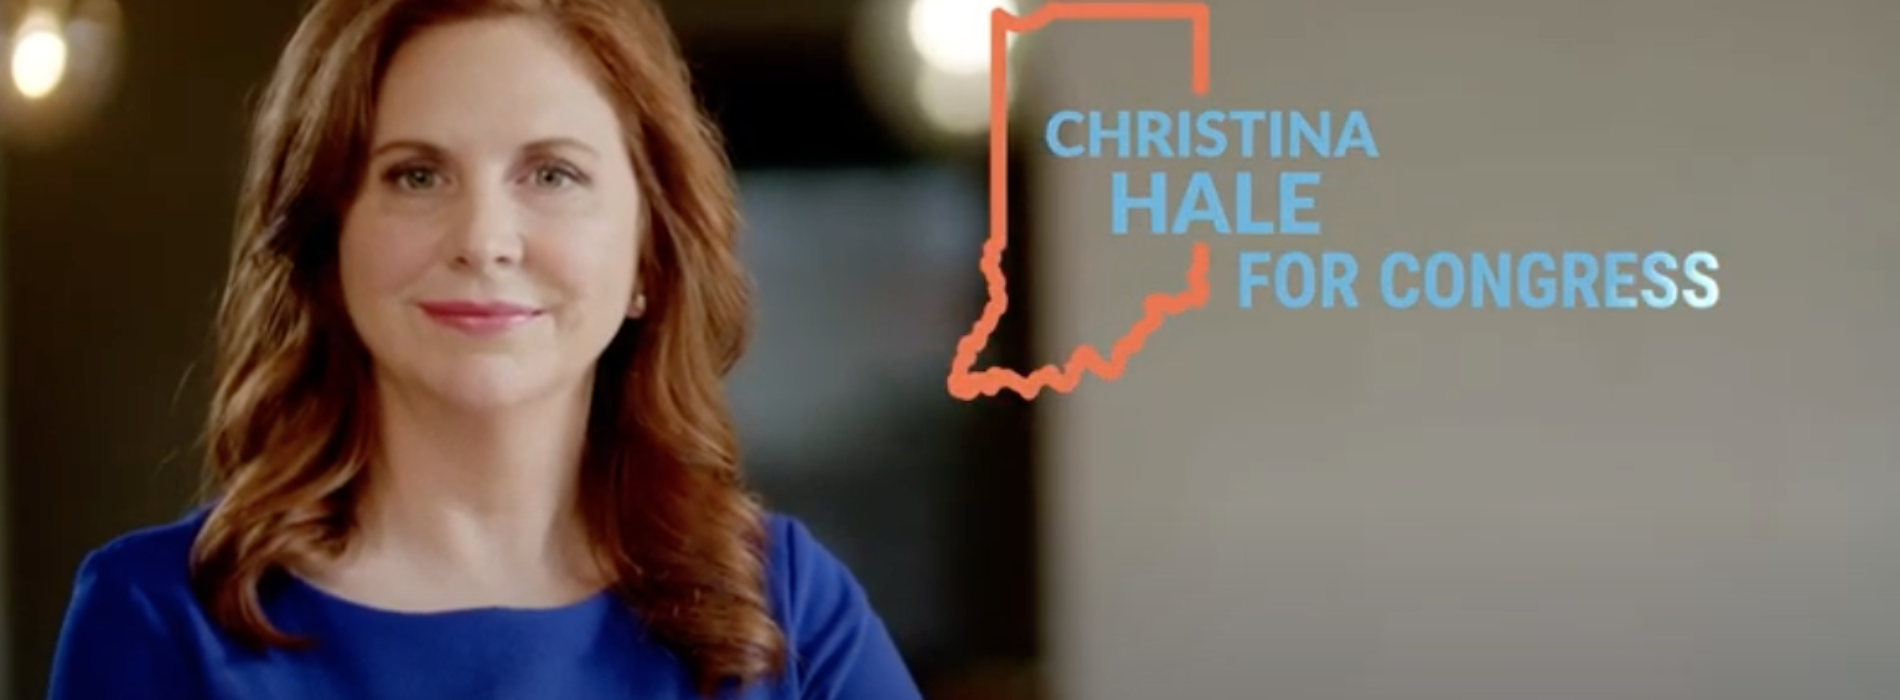 Christina Hale Releases First Television Ad